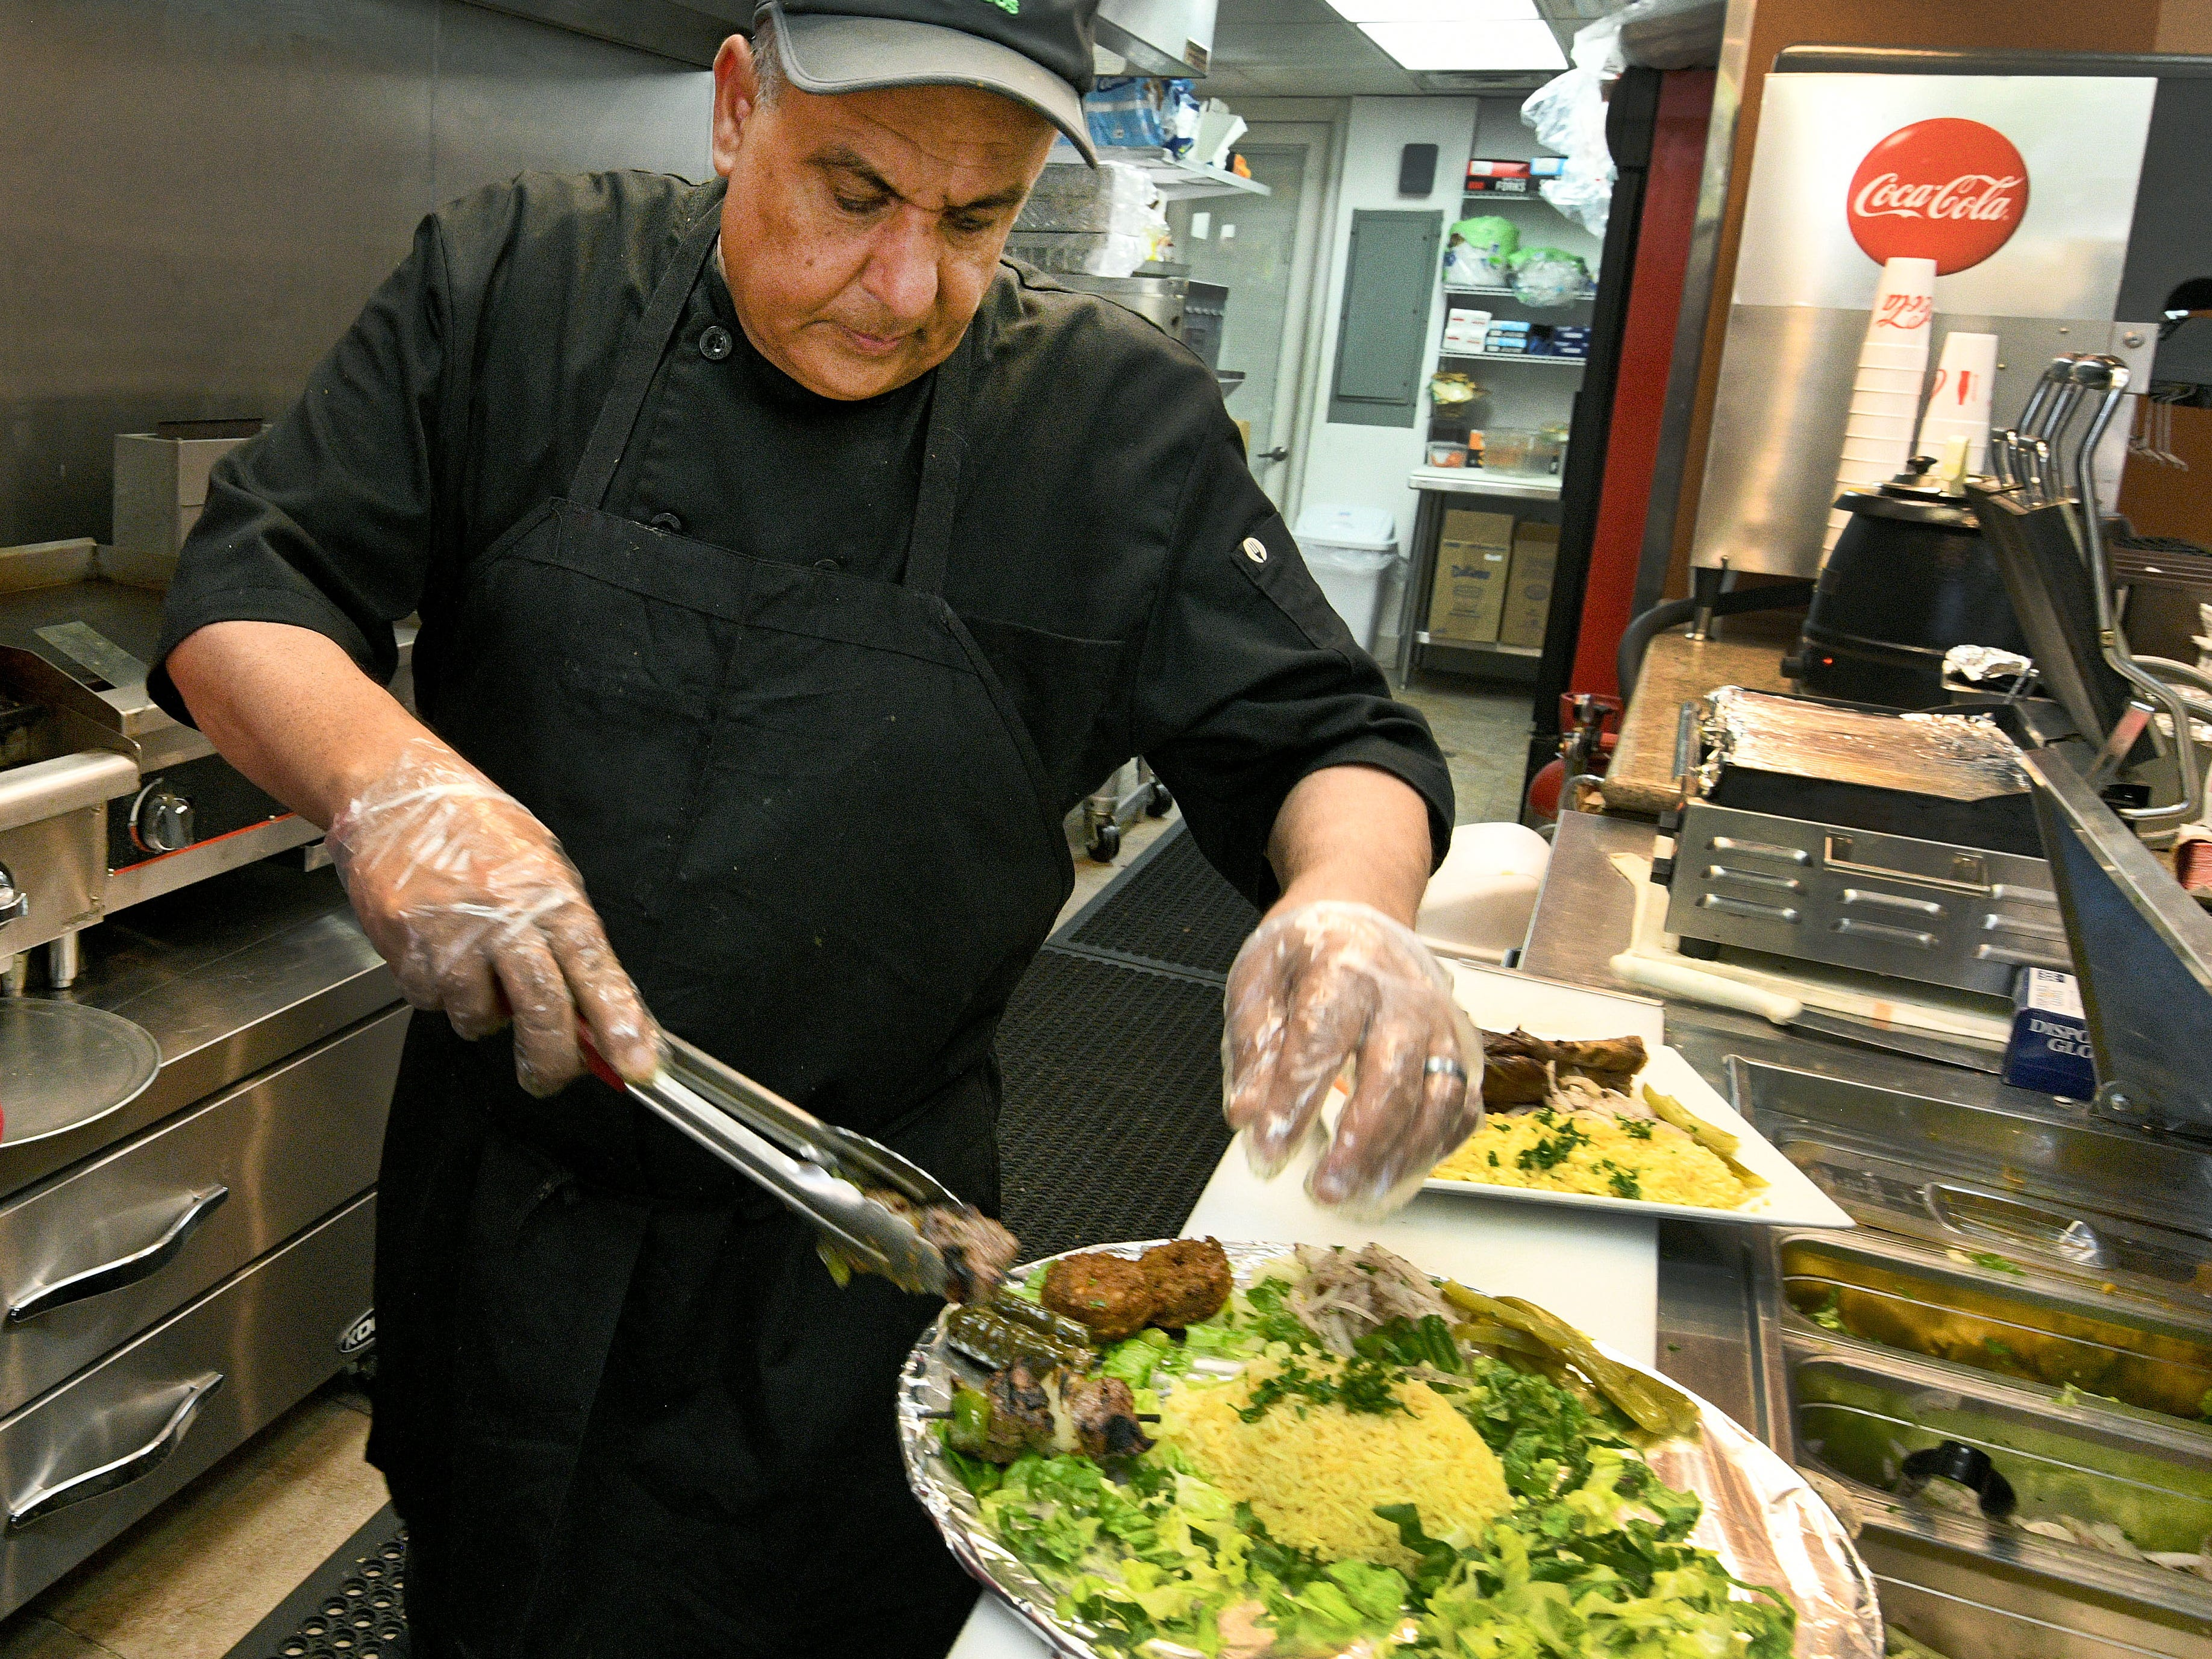 Ashraf Yousef assembles a mixed grill platter at Sahara Mediterranean and Indian restaurant on James Agee St. Tuesday, August 28, 2018.